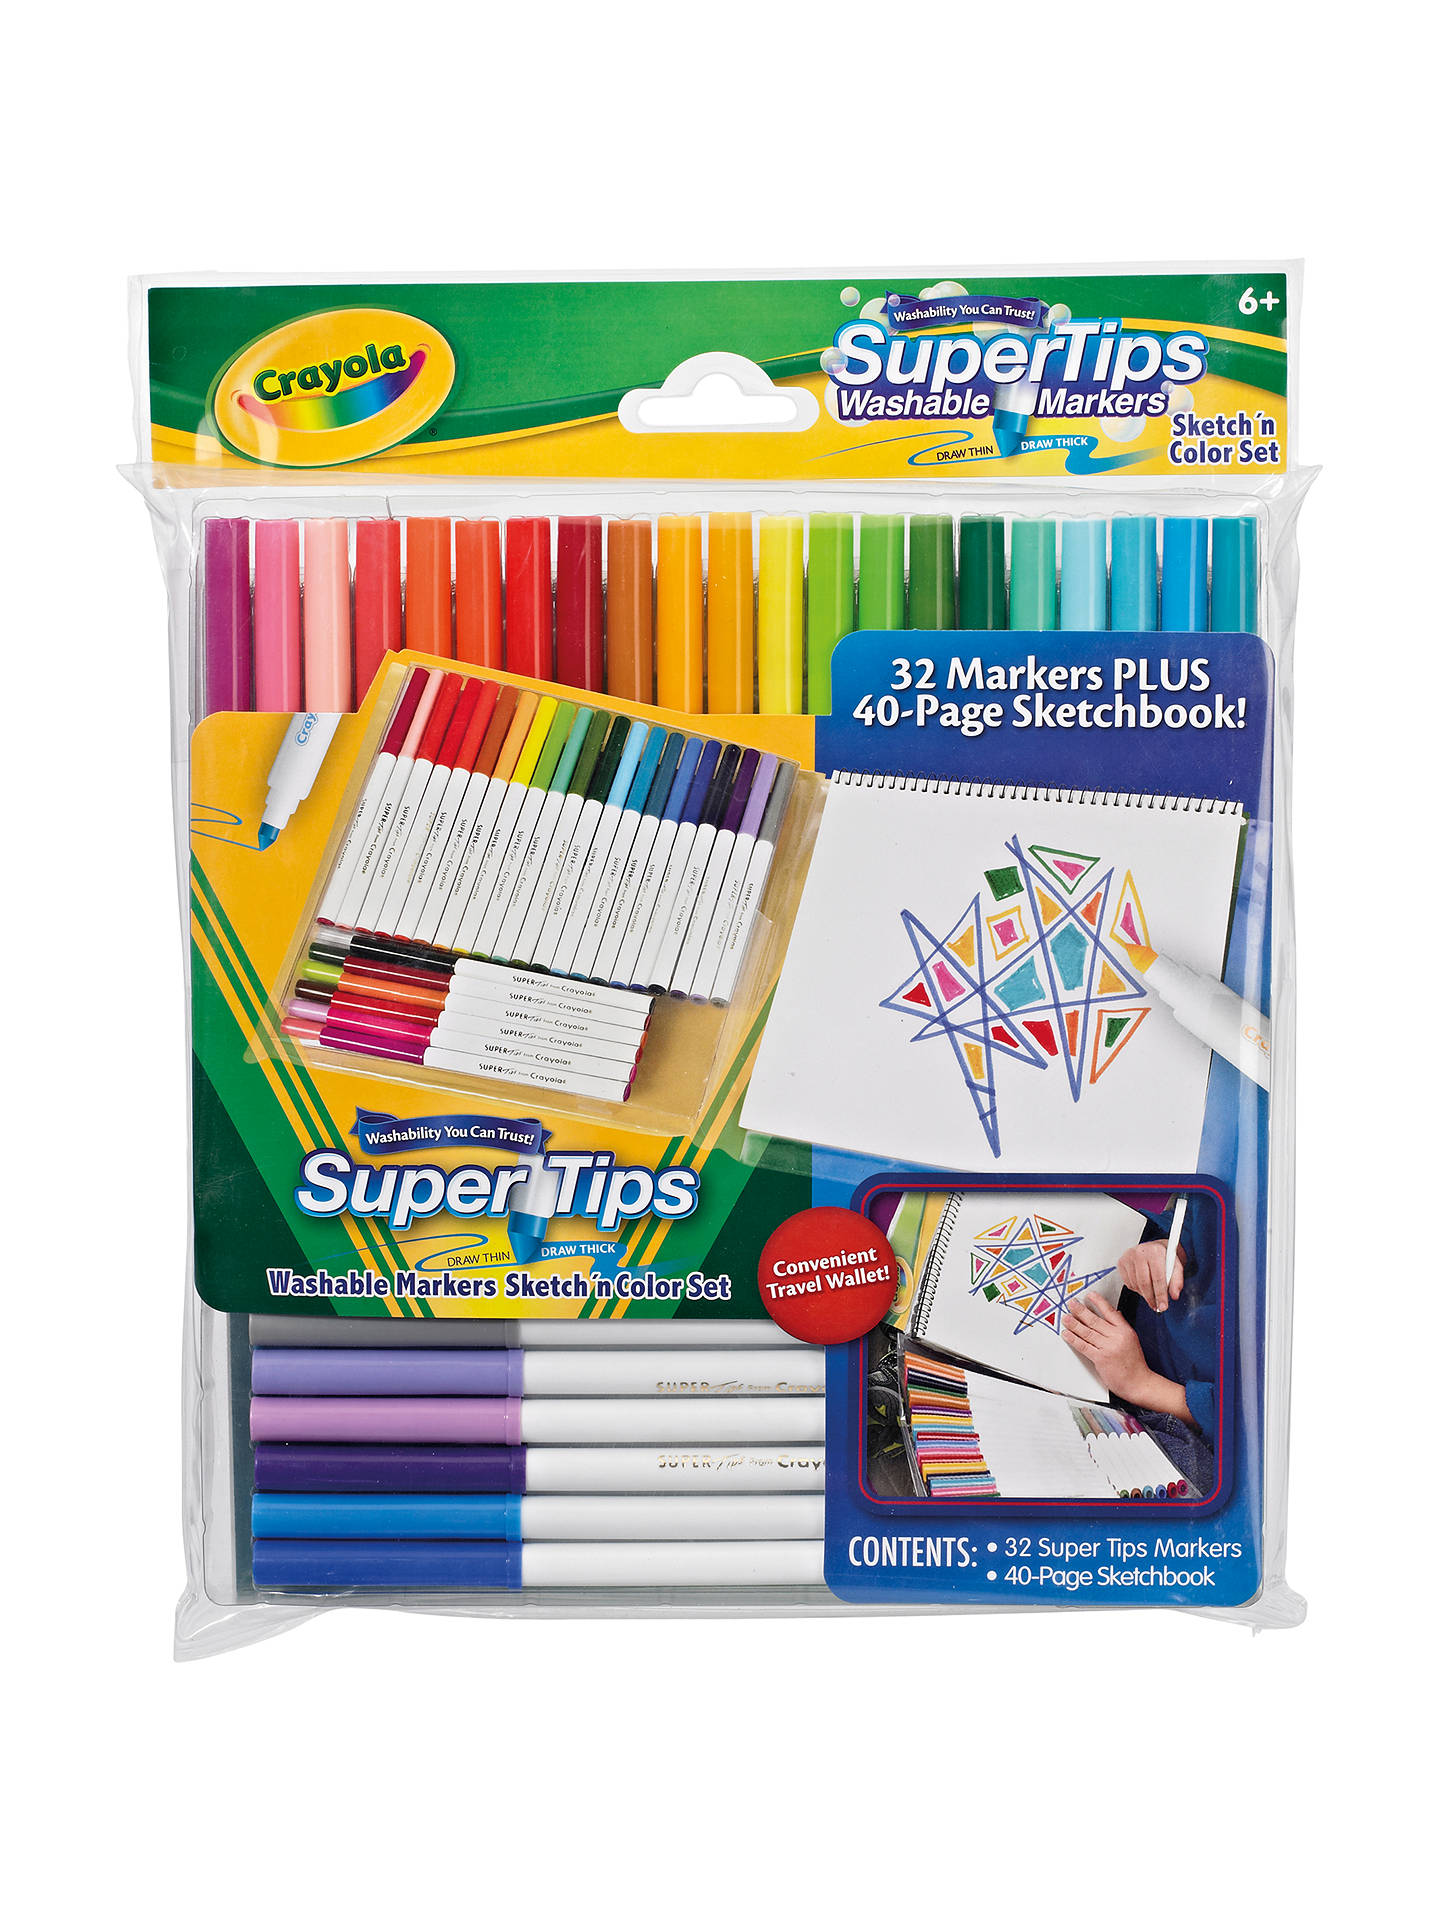 Crayola Super Tips Markers and Sketchbook at John Lewis